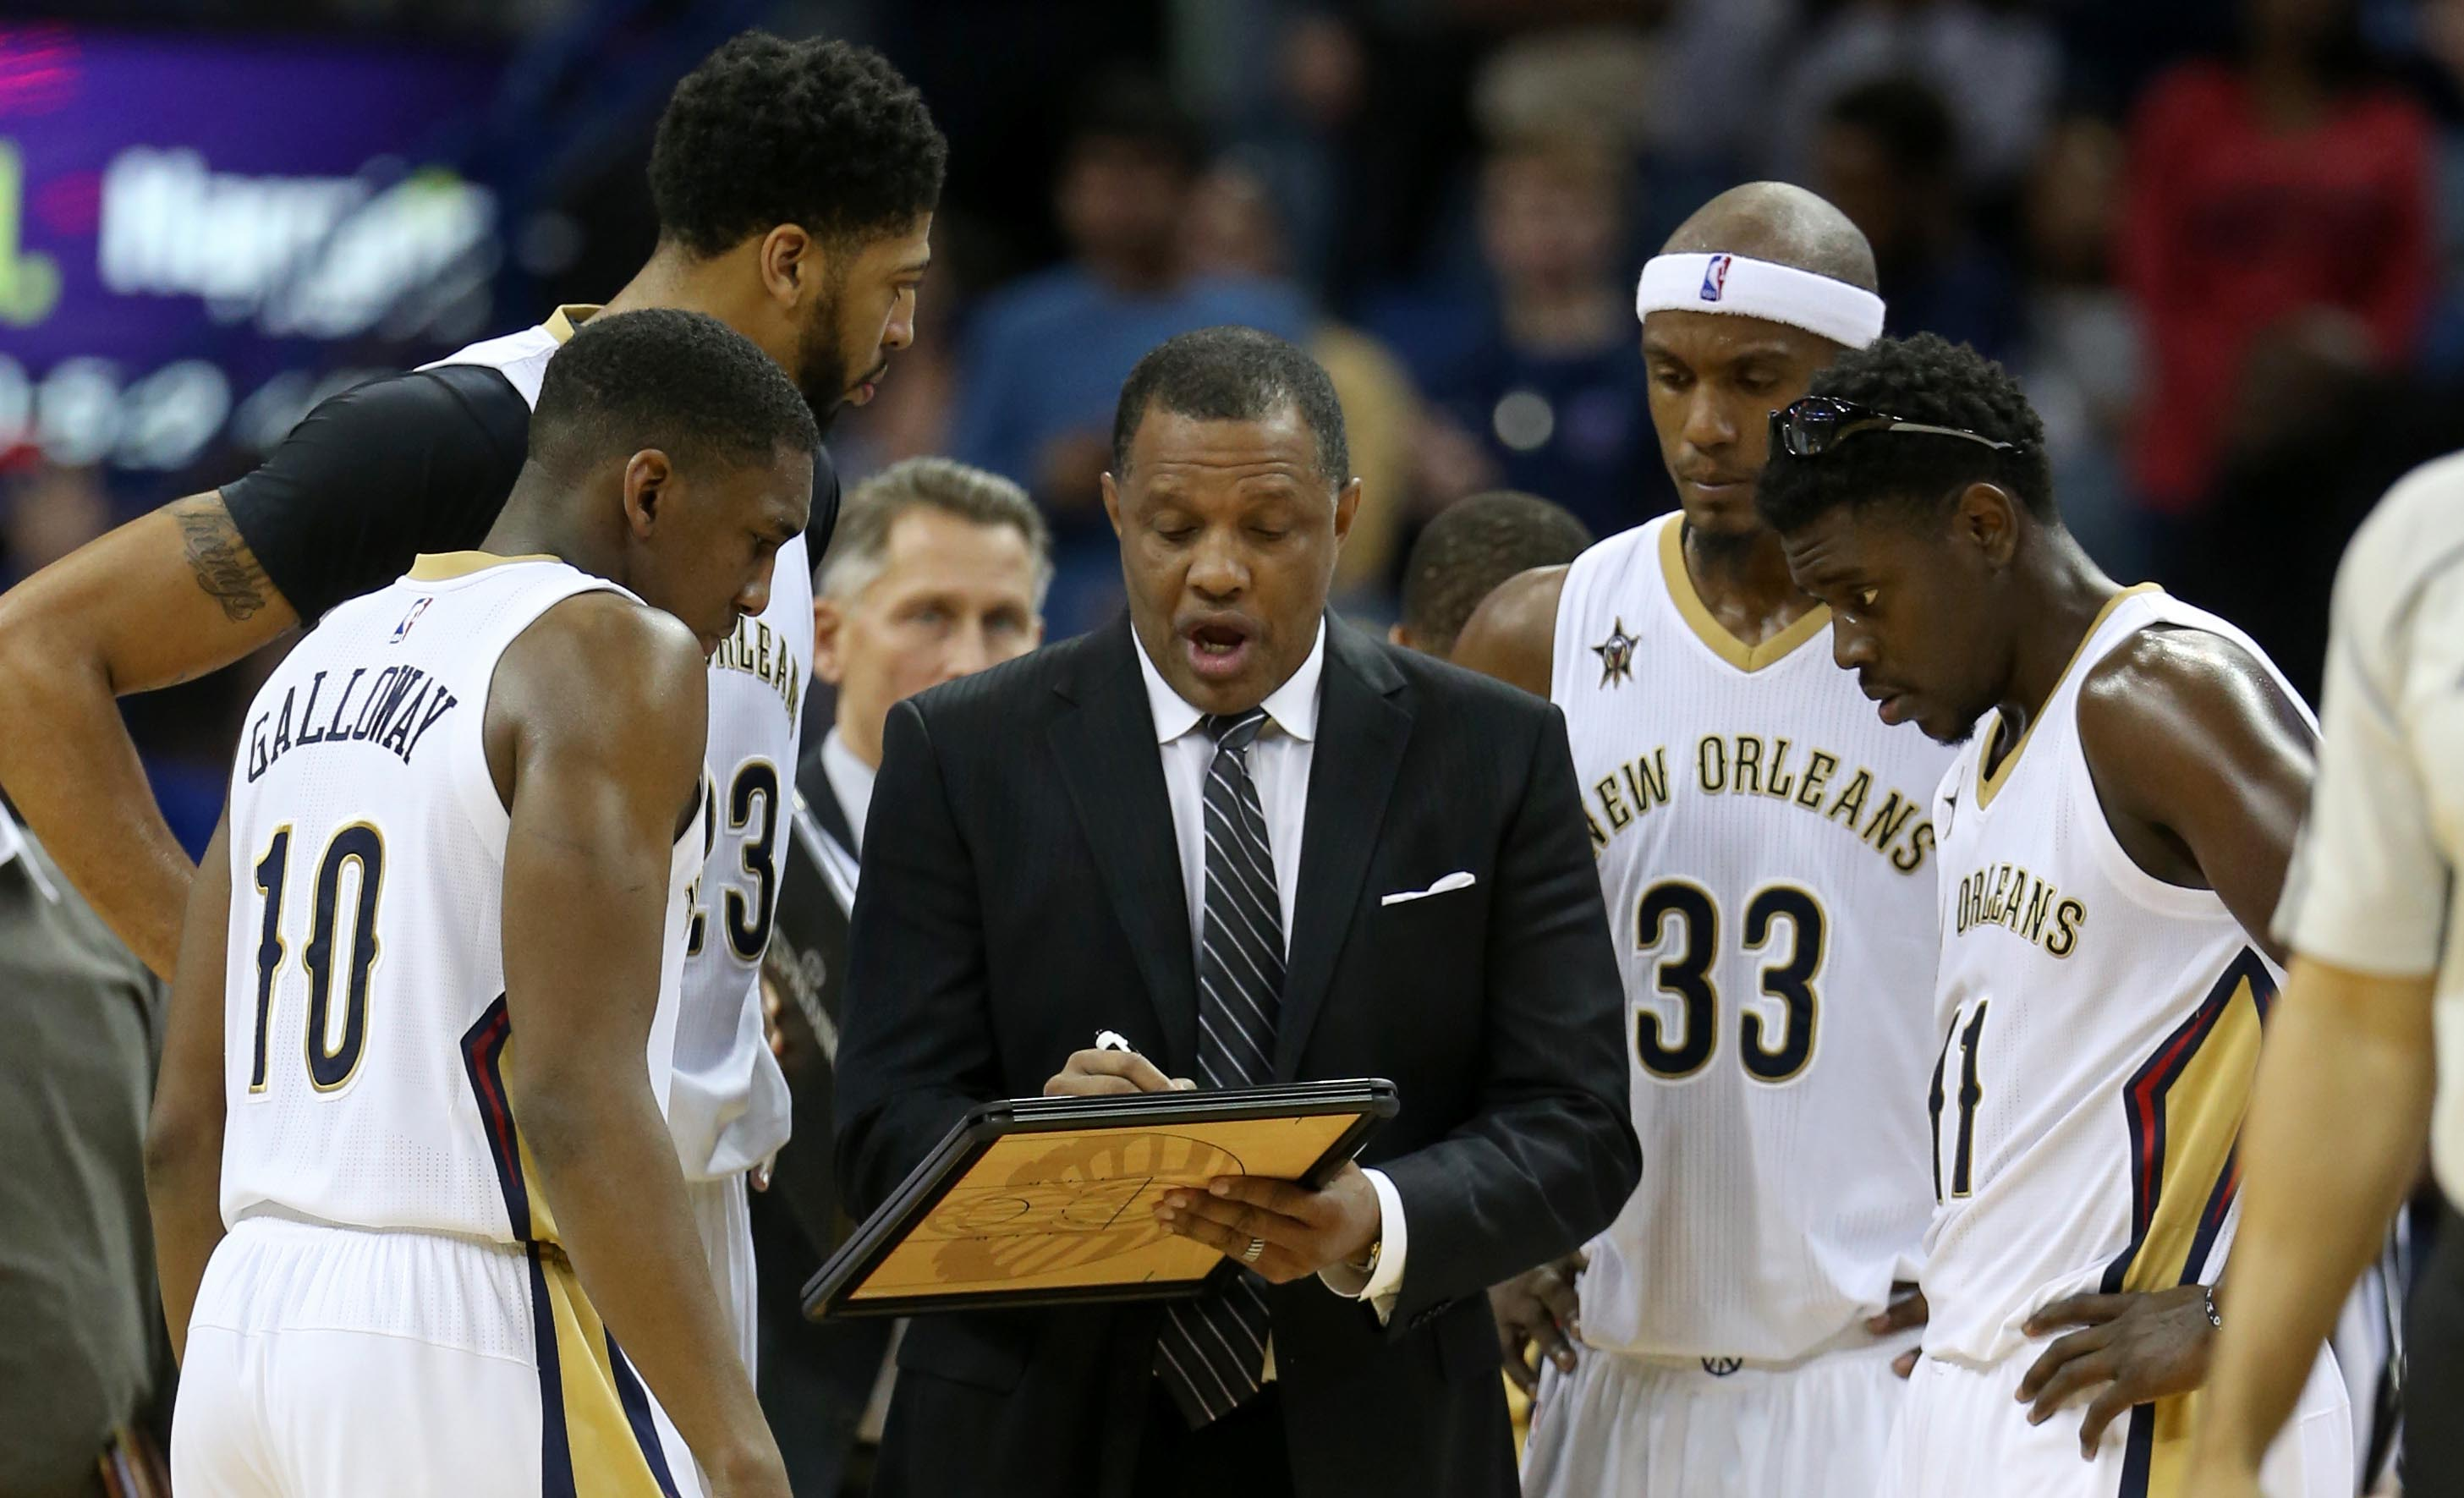 Nov 19, 2016; New Orleans, LA, USA; New Orleans Pelicans head coach Alvin Gentry talks to his players in overtime against the Charlotte Hornets at the Smoothie King Center. The Pelicans won in overtime, 121-116. Mandatory Credit: Chuck Cook-USA TODAY Sports